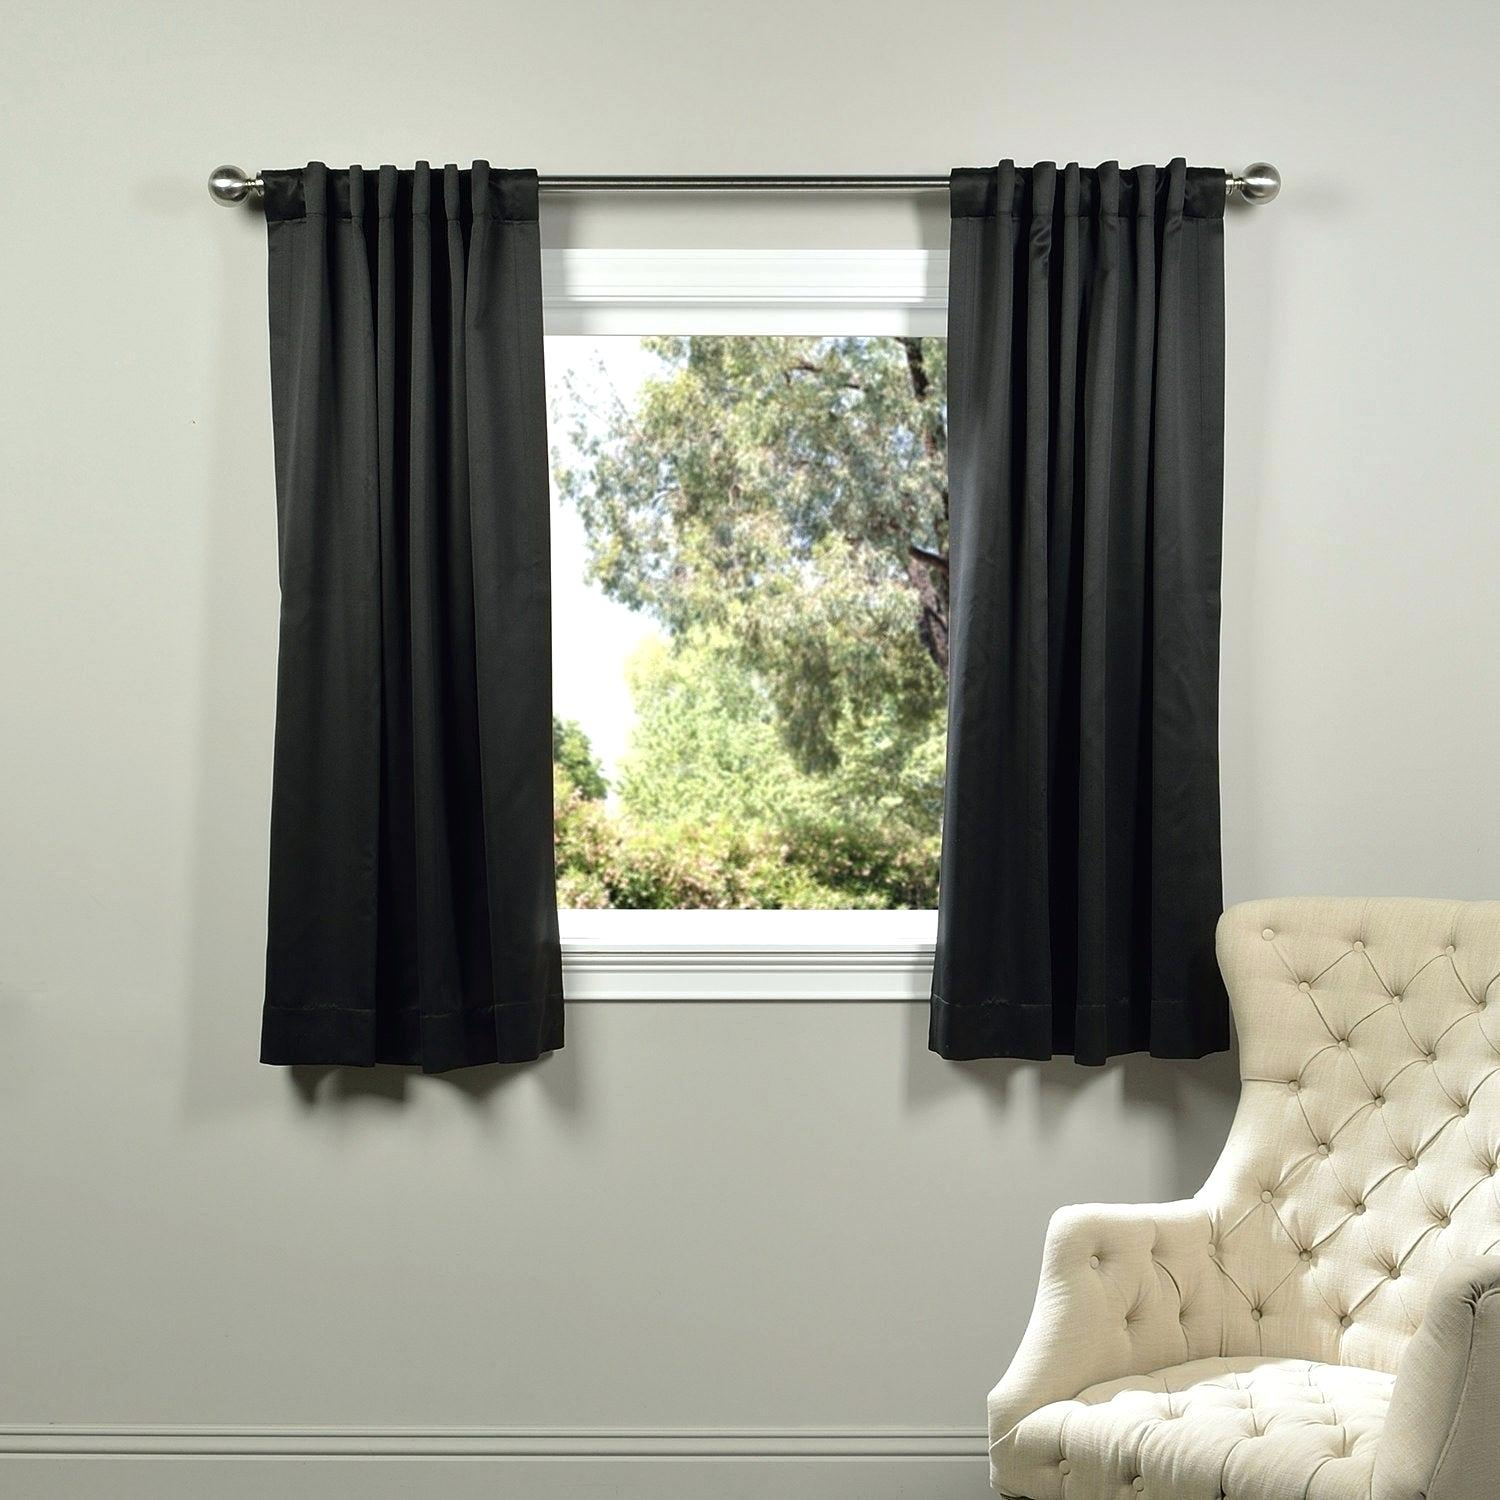 Overstock Blackout Curtains – Elevatedcreations (Image 19 of 22)